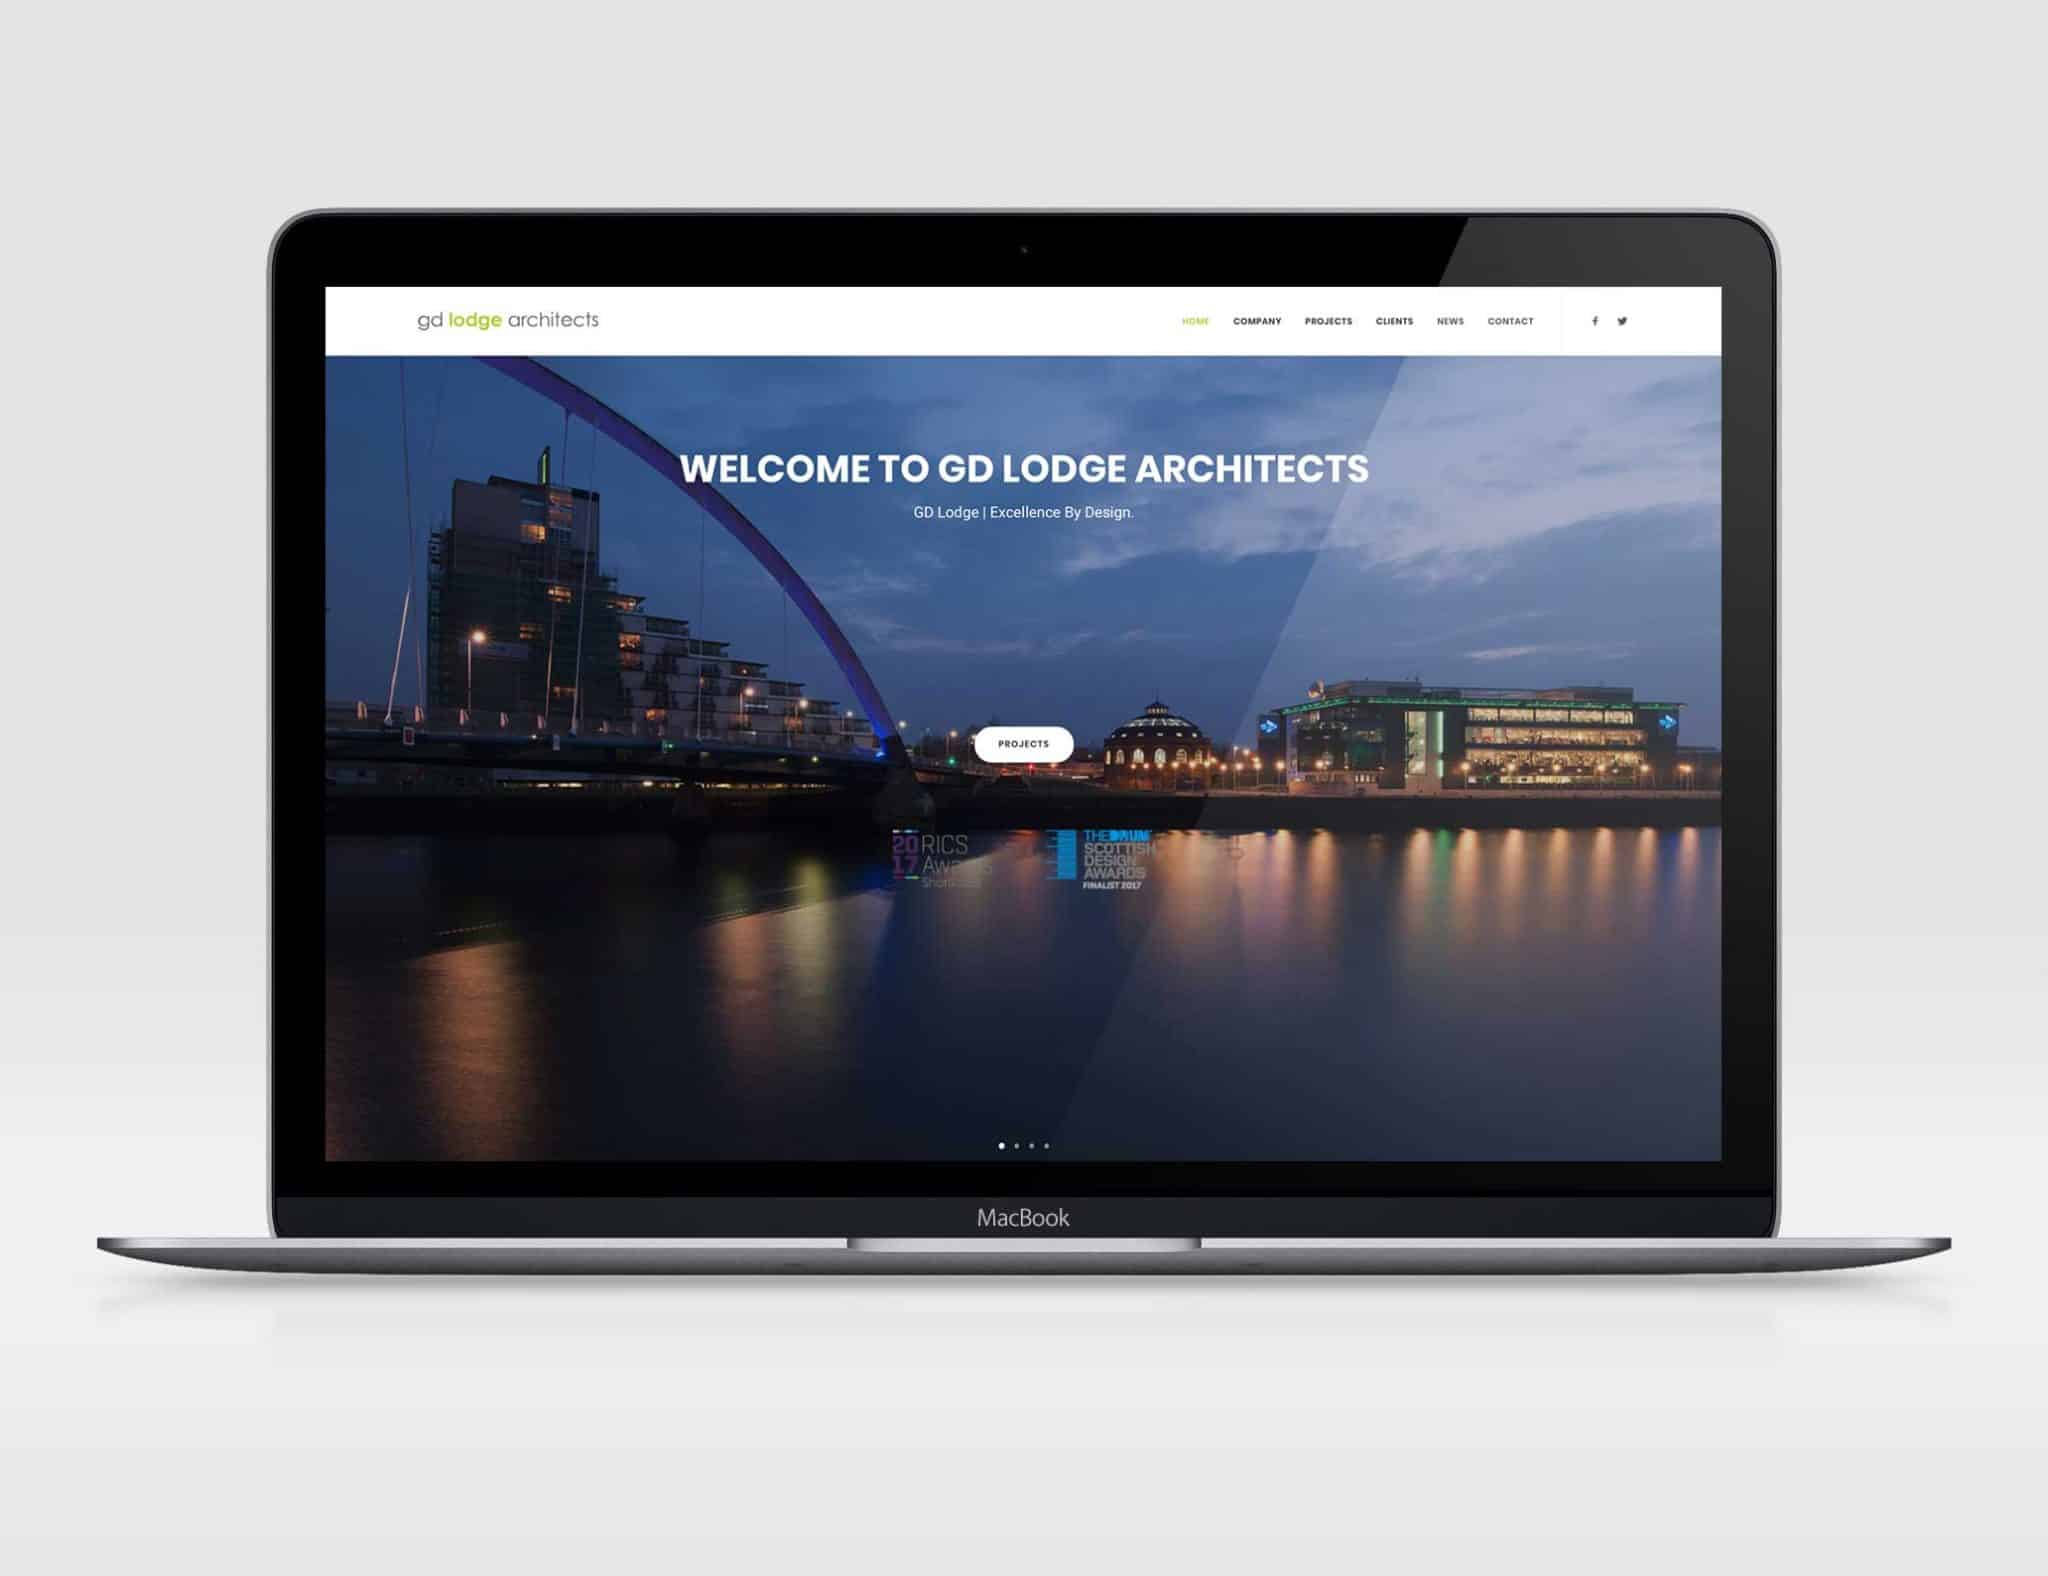 gd lodge architects website design